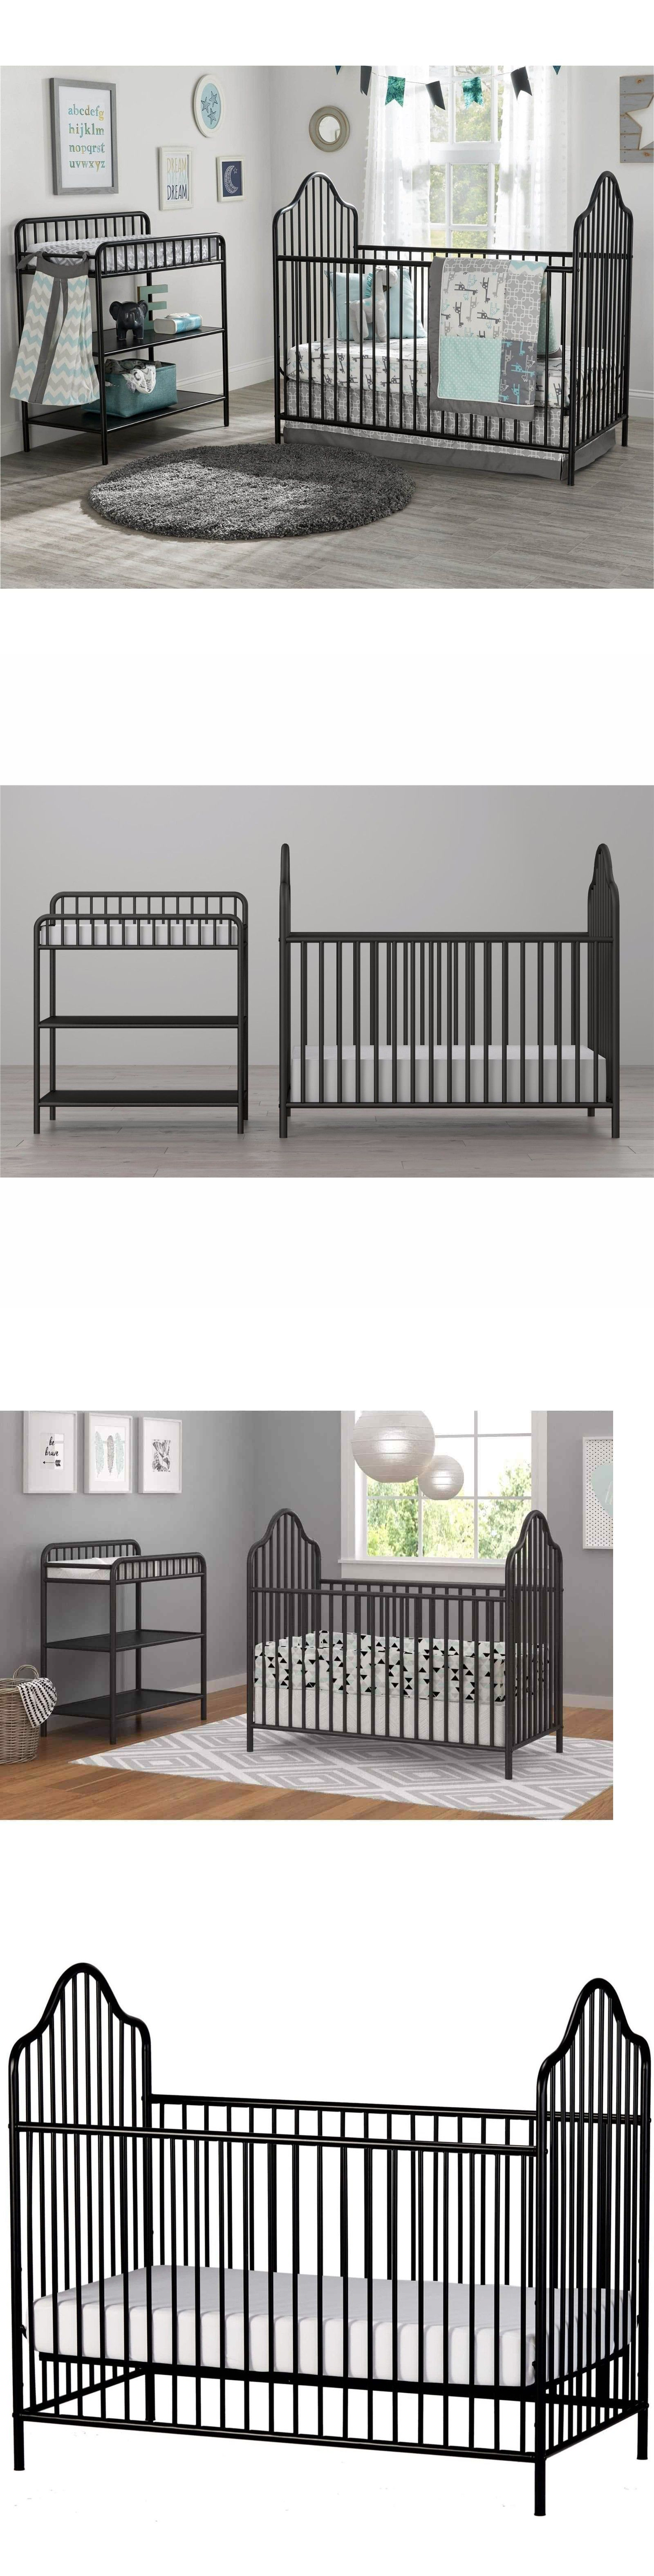 Cribs 2985: Victorian Black Spindle Metal Crib Changing Table ...